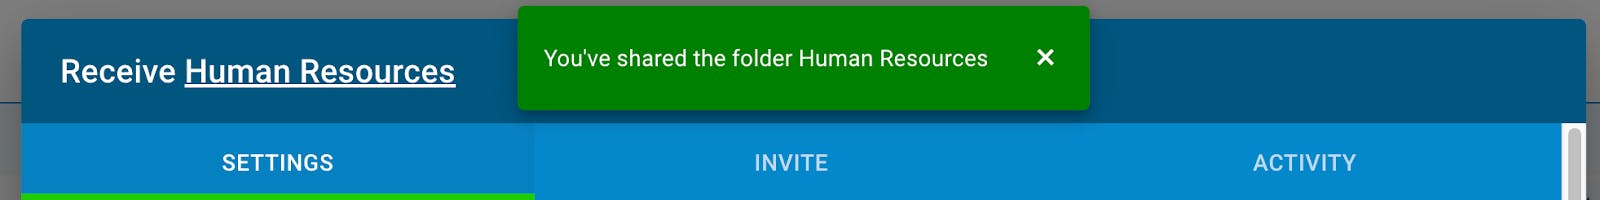 Confirmation that a shared folder is ready to receive files.